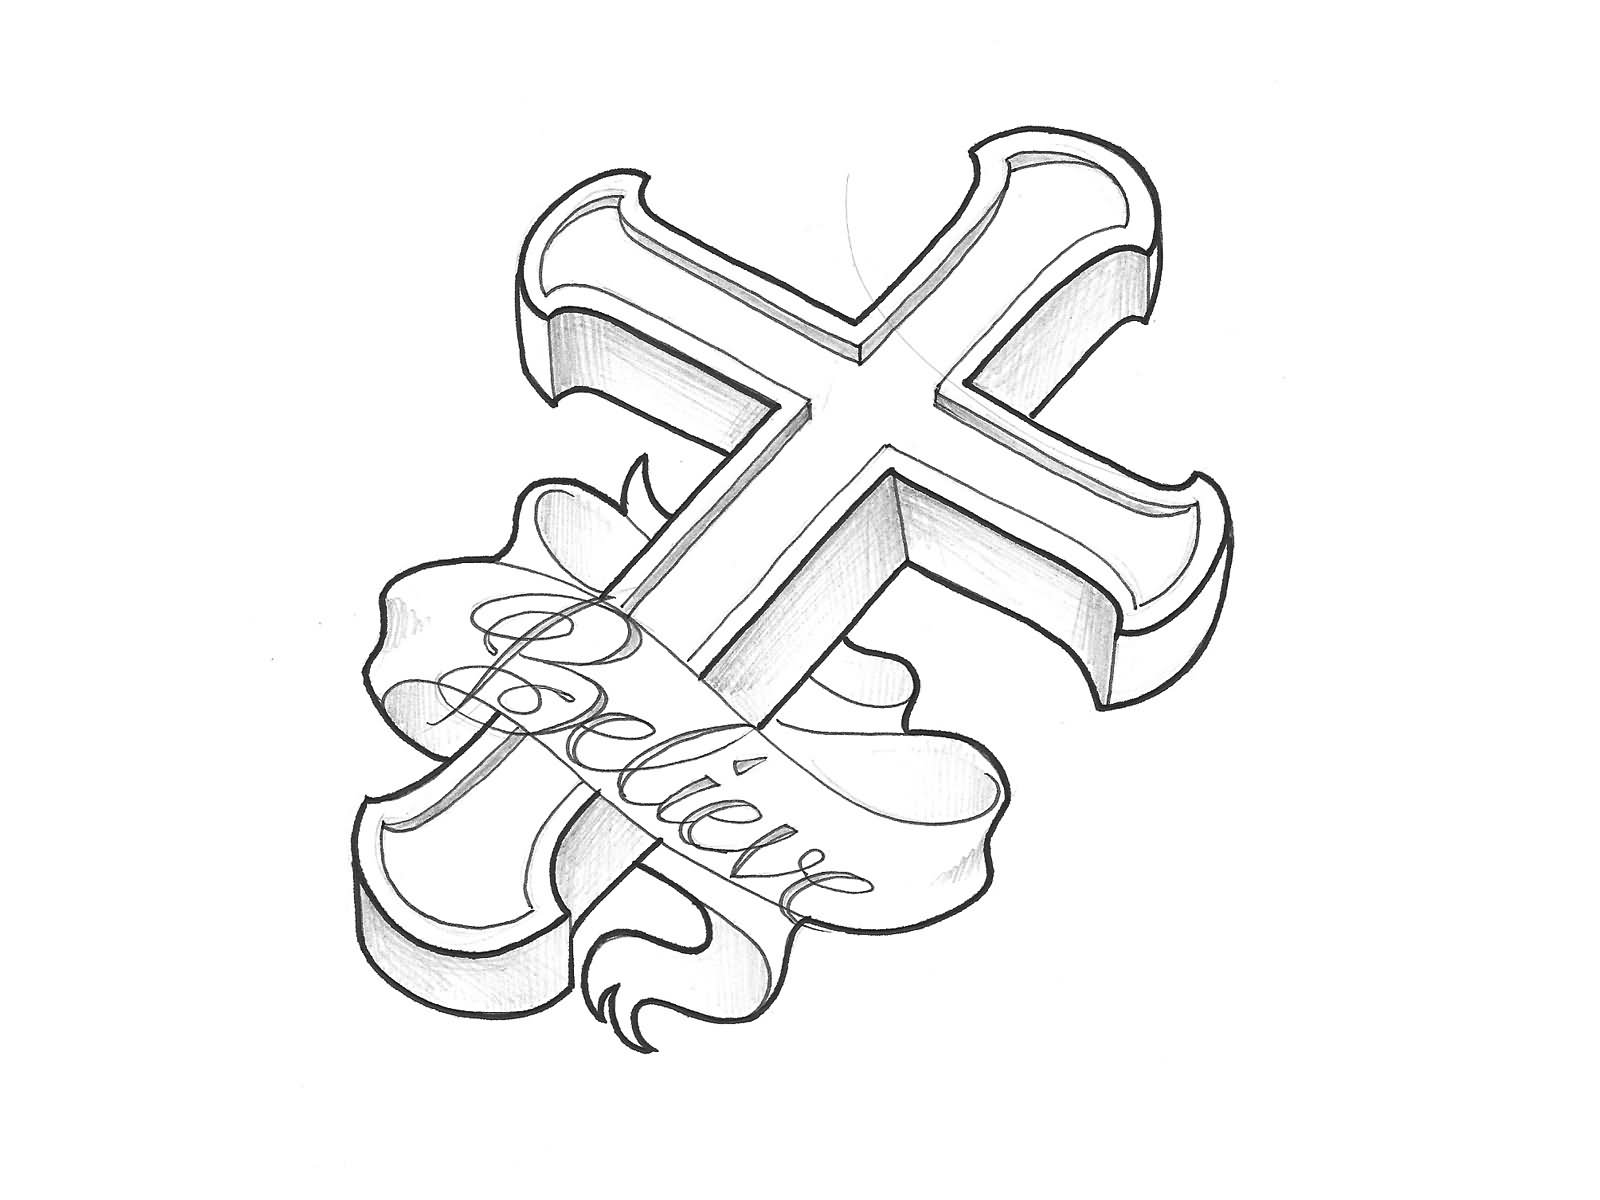 1600x1200 Religious Black 3d Cross With Banner Tattoo Stencil